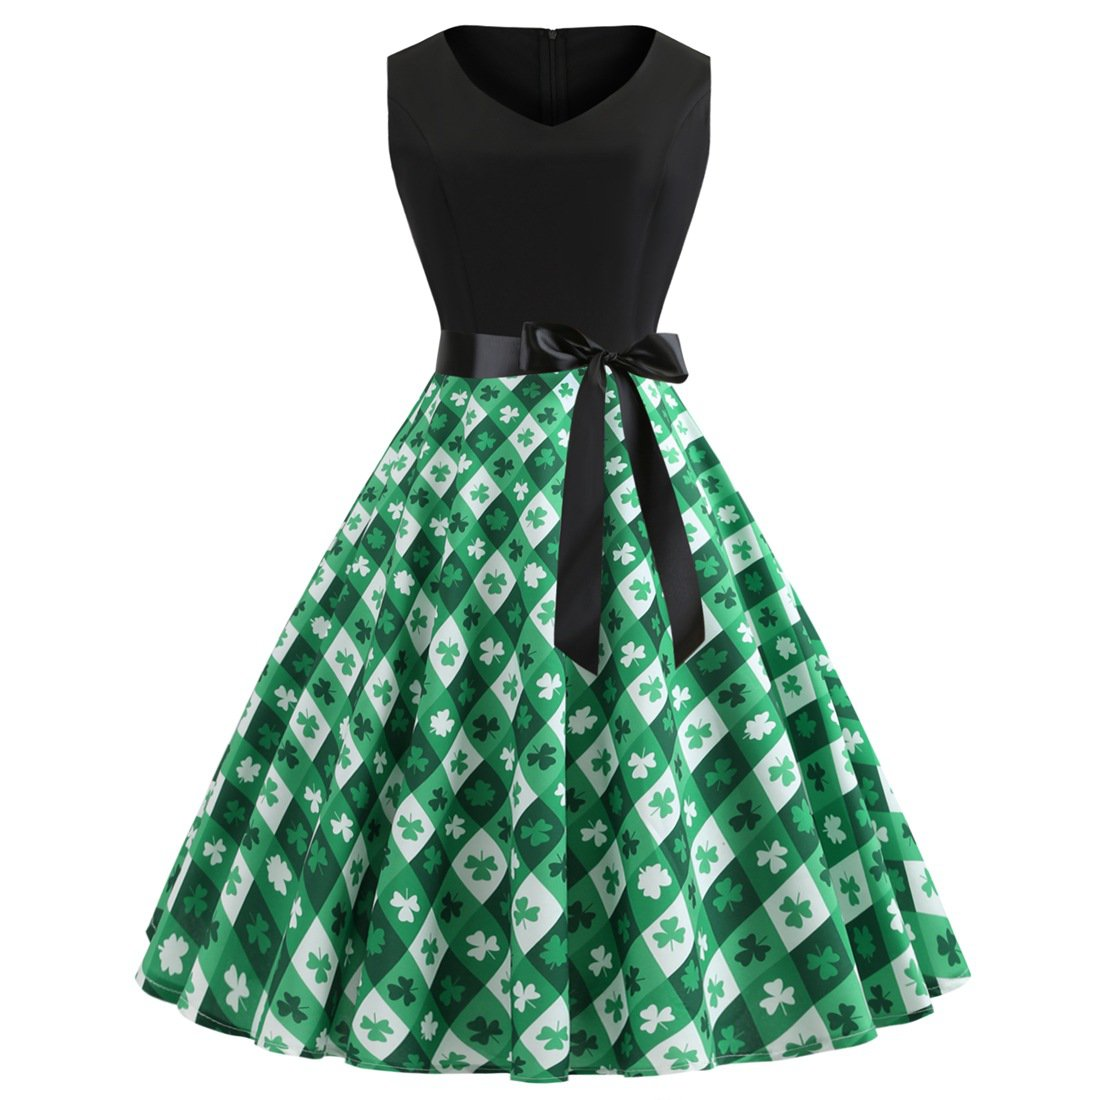 St. Patrick Day Retro Party Dress Celtic Festival Shamrocks Printed Costume Vintage Midi Dresses